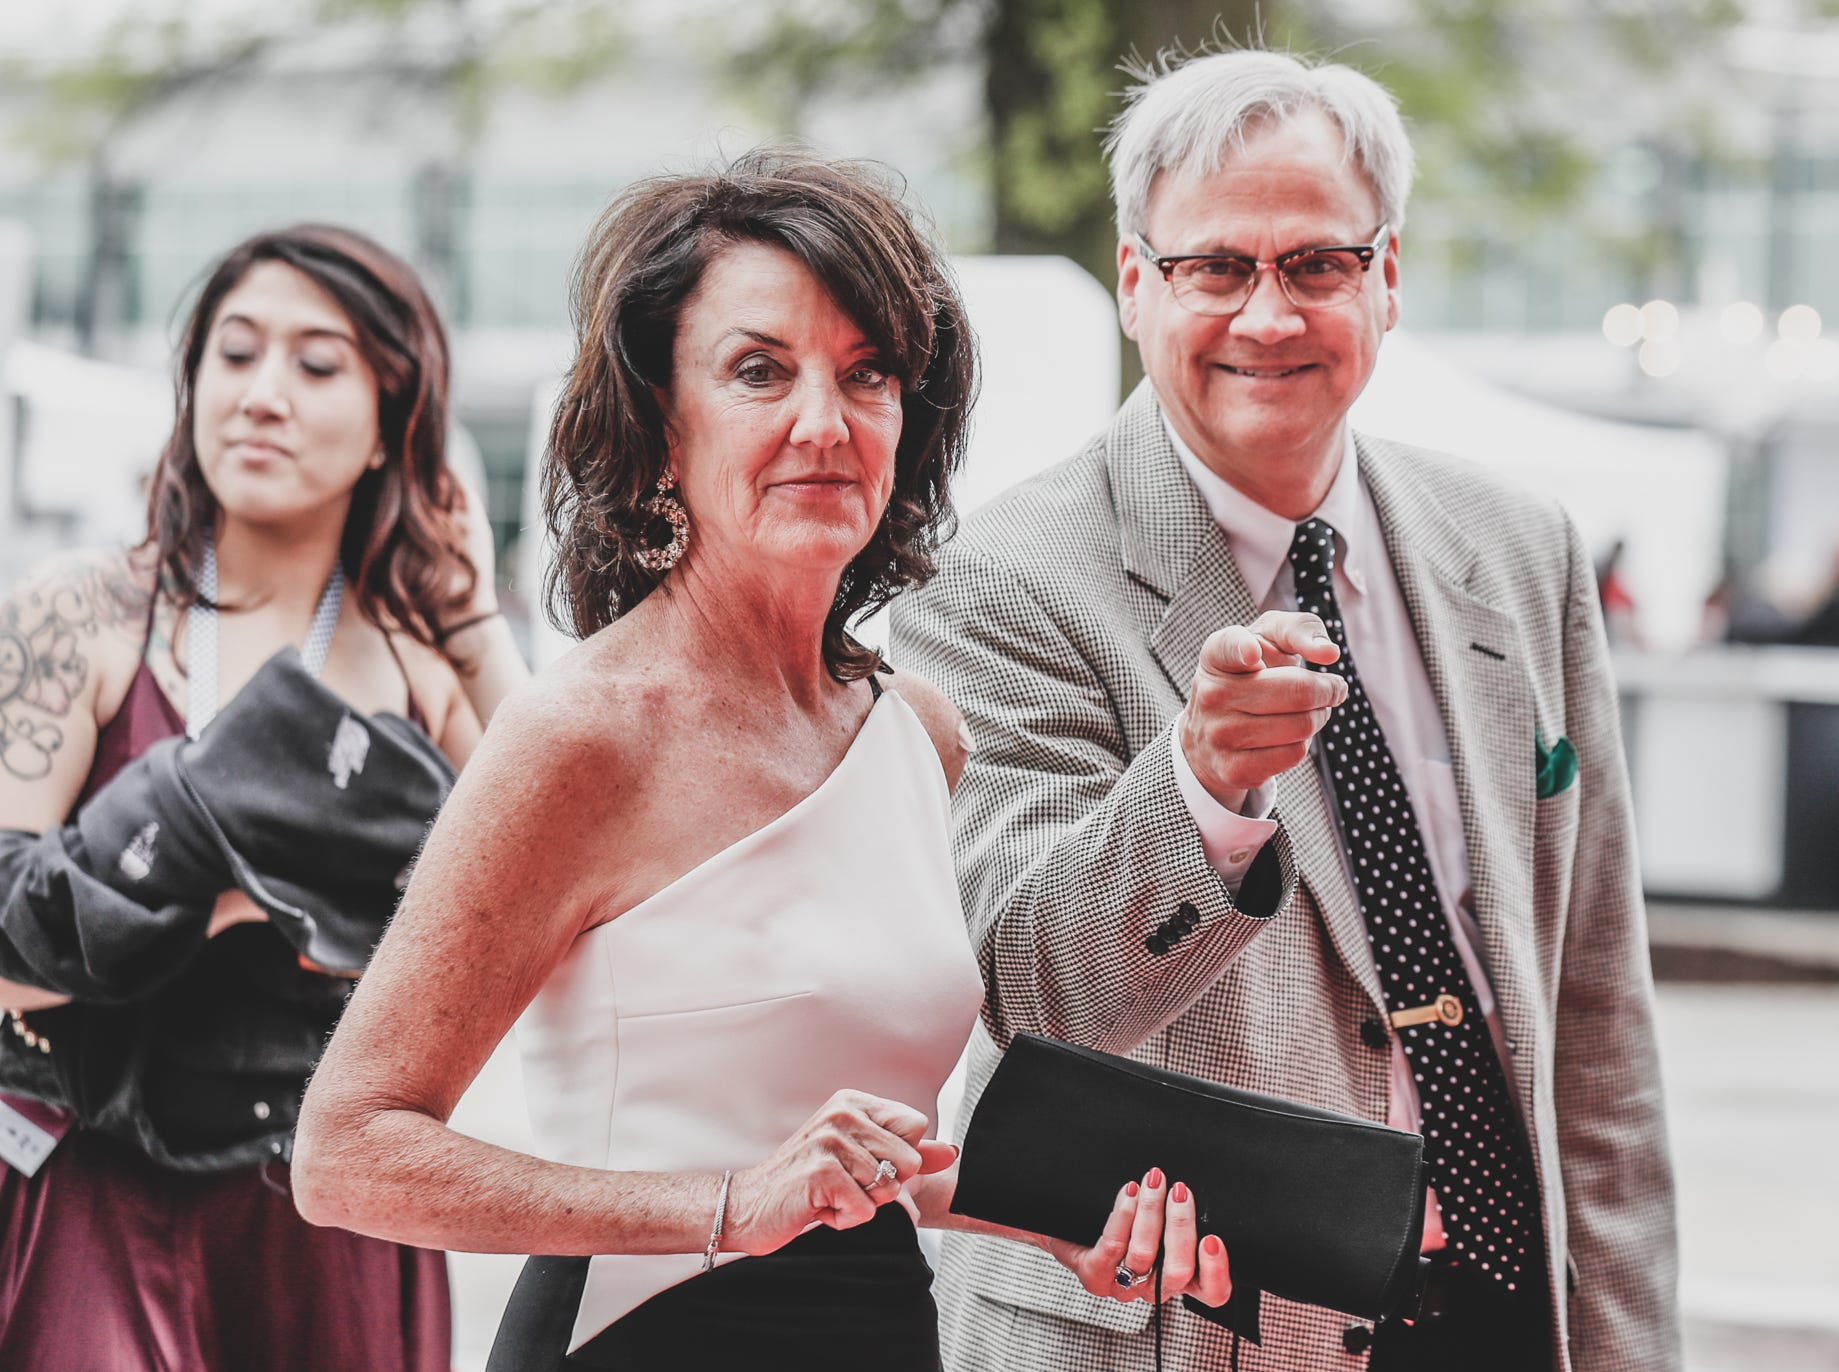 Candidate for Indianapolis Mayor, Jim Merritt, and his wife Kelley Merritt, attend the Rev Indy fundraiser, held at the Indianapolis Motor Speedway on Saturday, May 4, 2019. Funds raised support the IU Health Foundation statewide and the IU Health Emergency Medical Center at IMS.